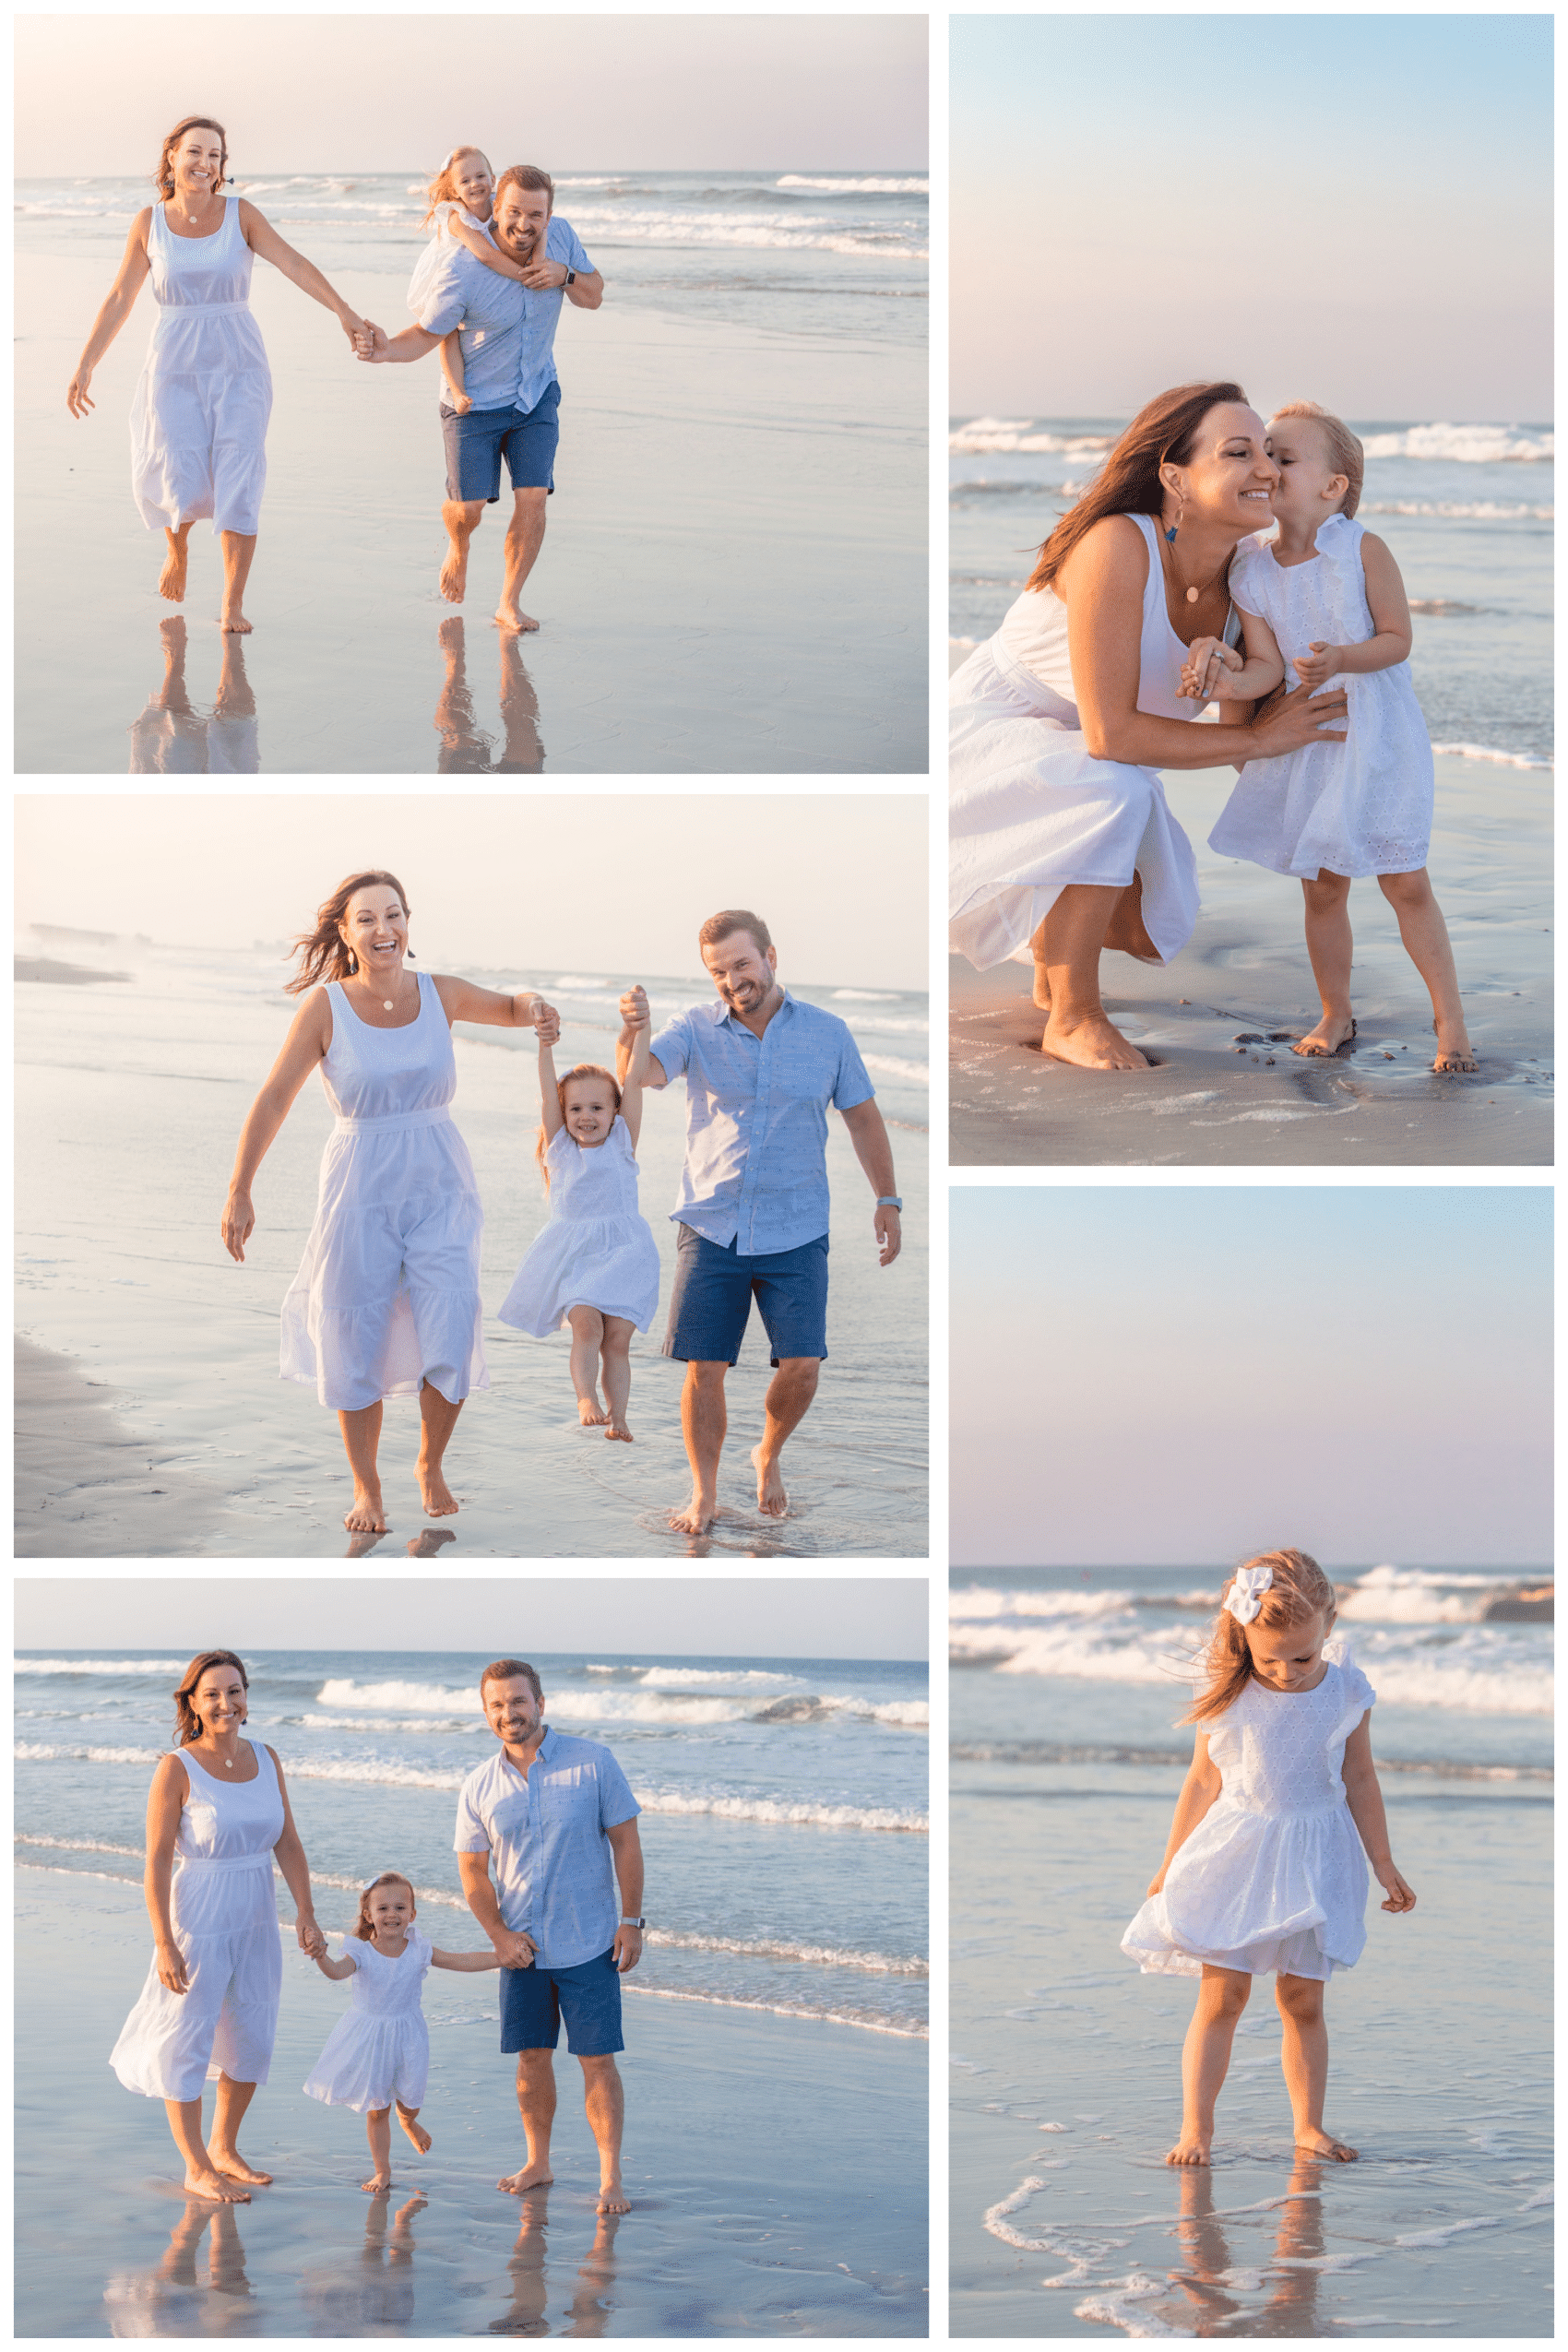 jacksonville beach family photos of family wearing white and blue